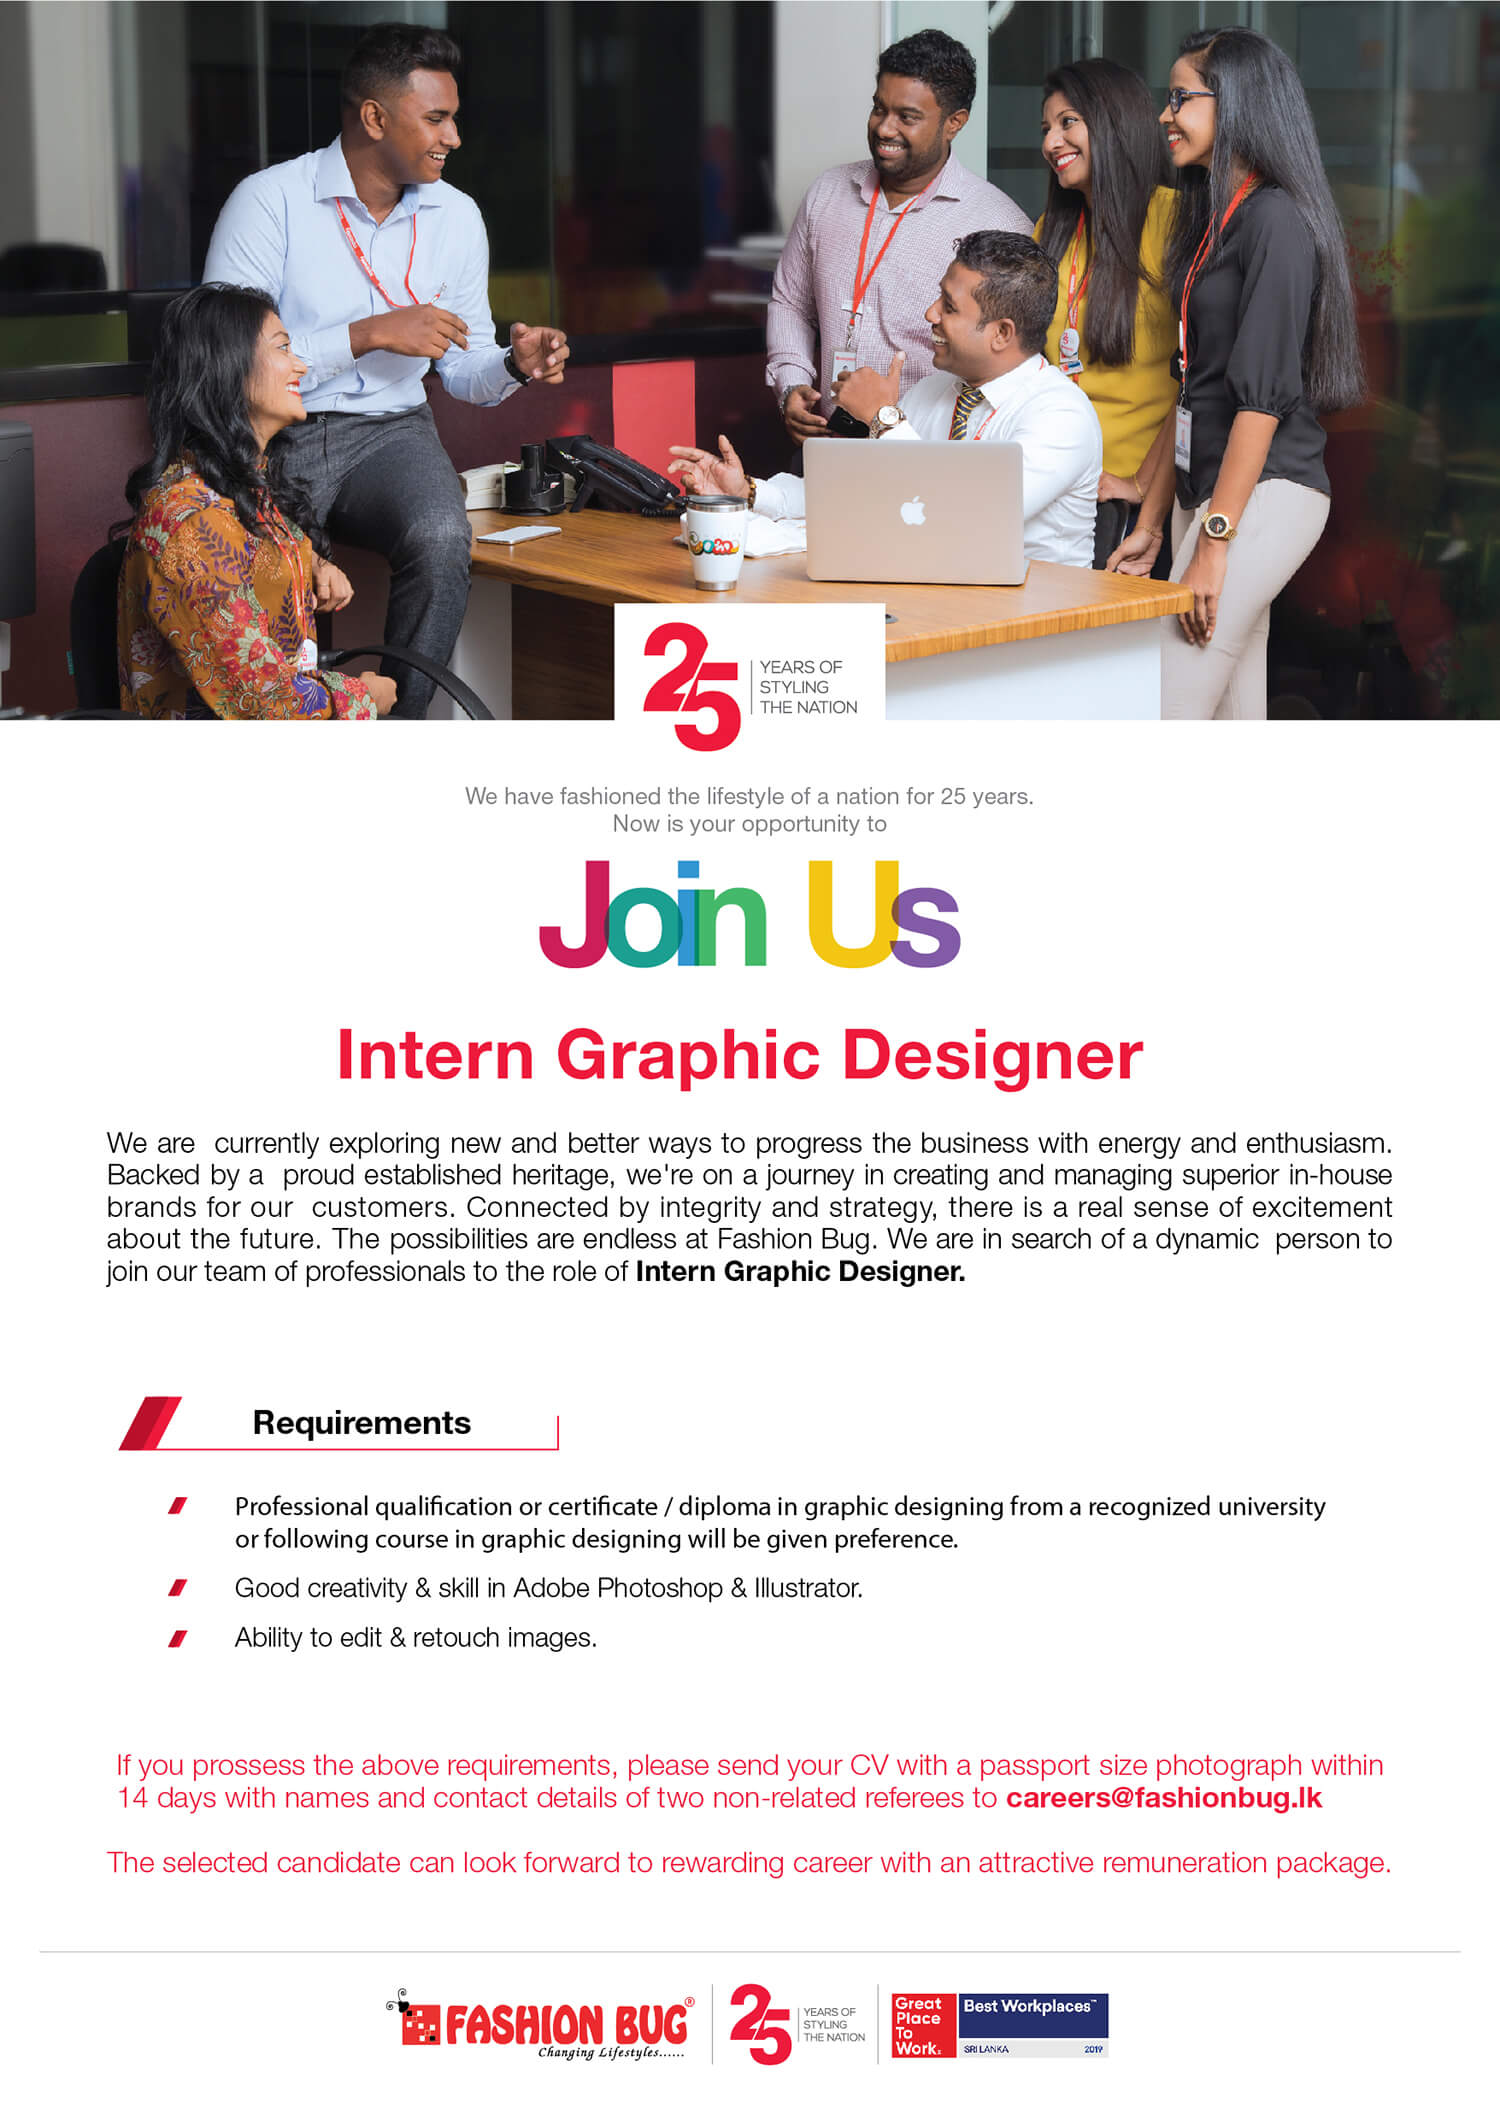 Intern Graphic Designer